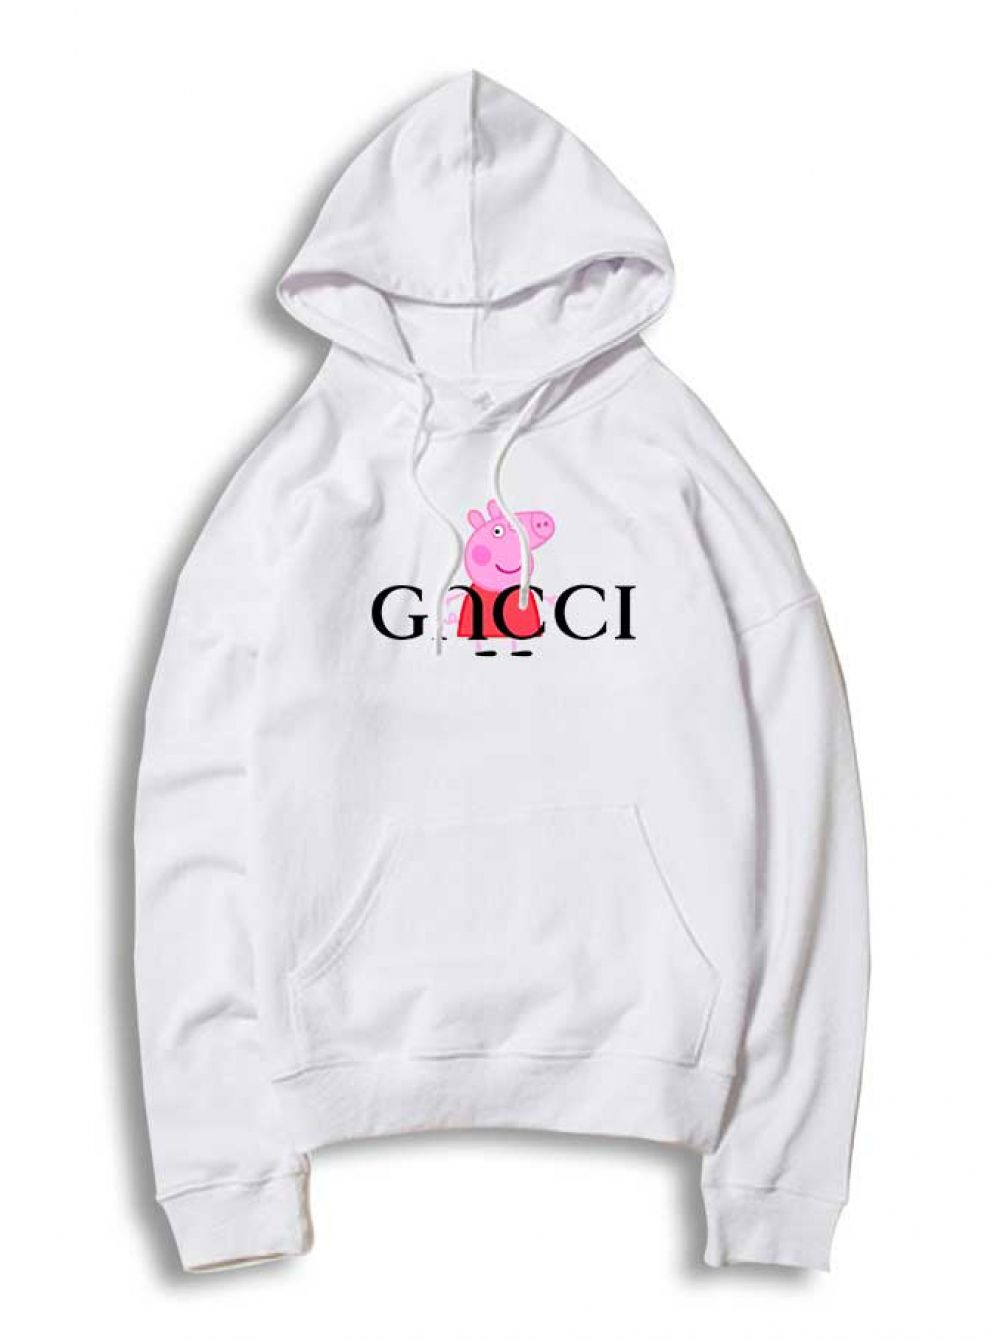 c292b8492d8f Peppa Pig Red Gucci Parody Hoodie   33.50  Tee  Hype  Outfits  Outfit   Hypebeast  fashion  shirt  Tees  Tops  Teen